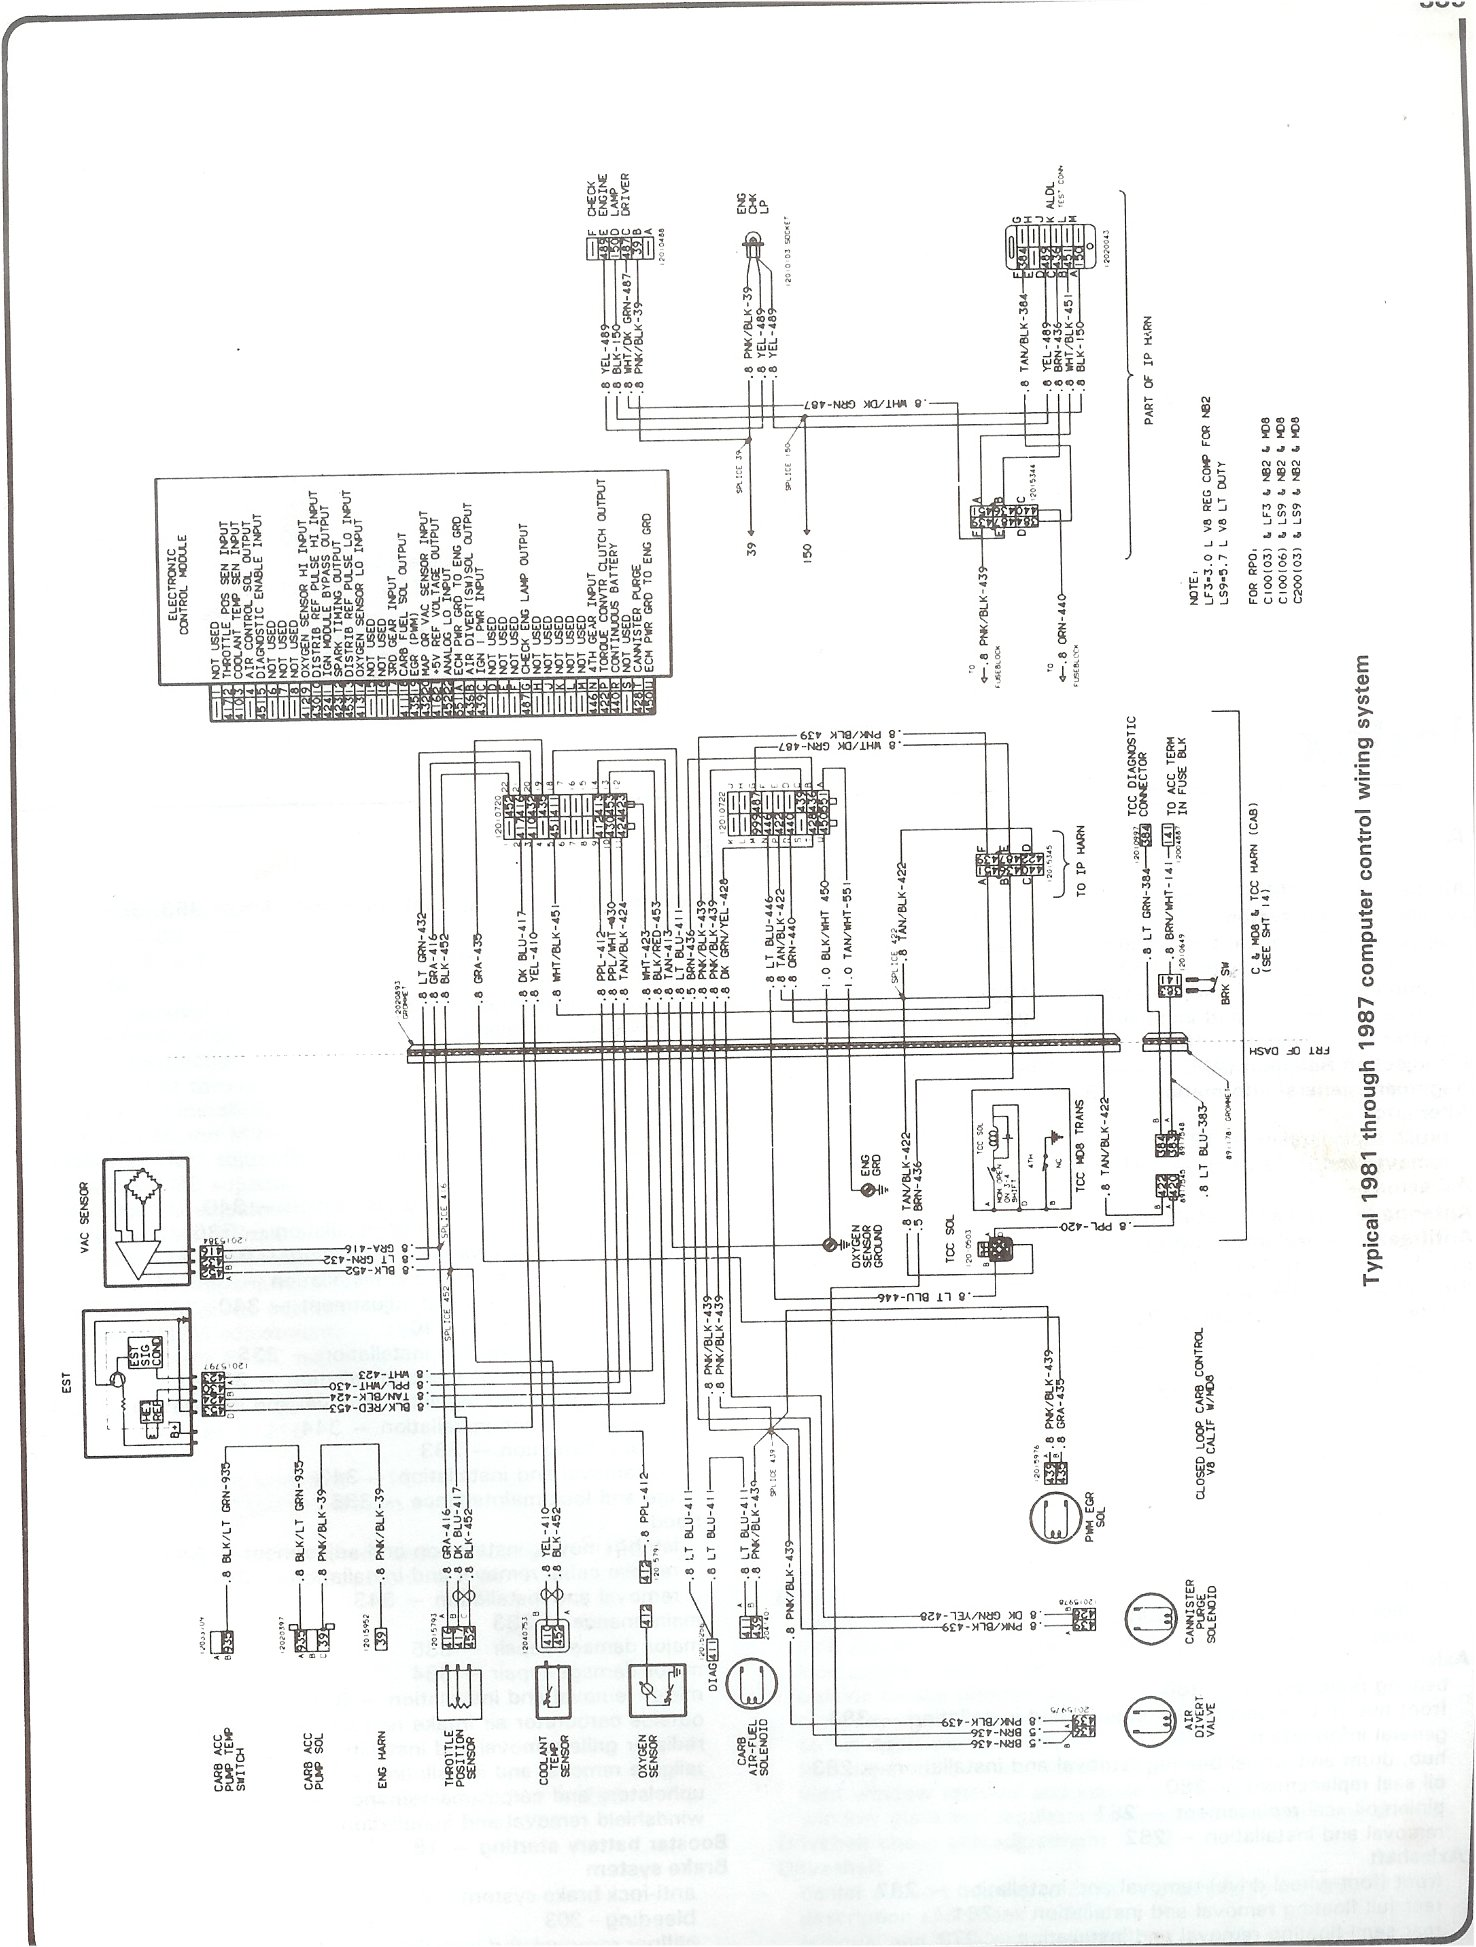 1981 Chevrolet C10 Wiring Diagram Radio Layout Diagrams 04 Toyota Van 81 Chevy Another Blog About U2022 Rh Ok2 Infoservice Ru Gm Harness Express Stereo